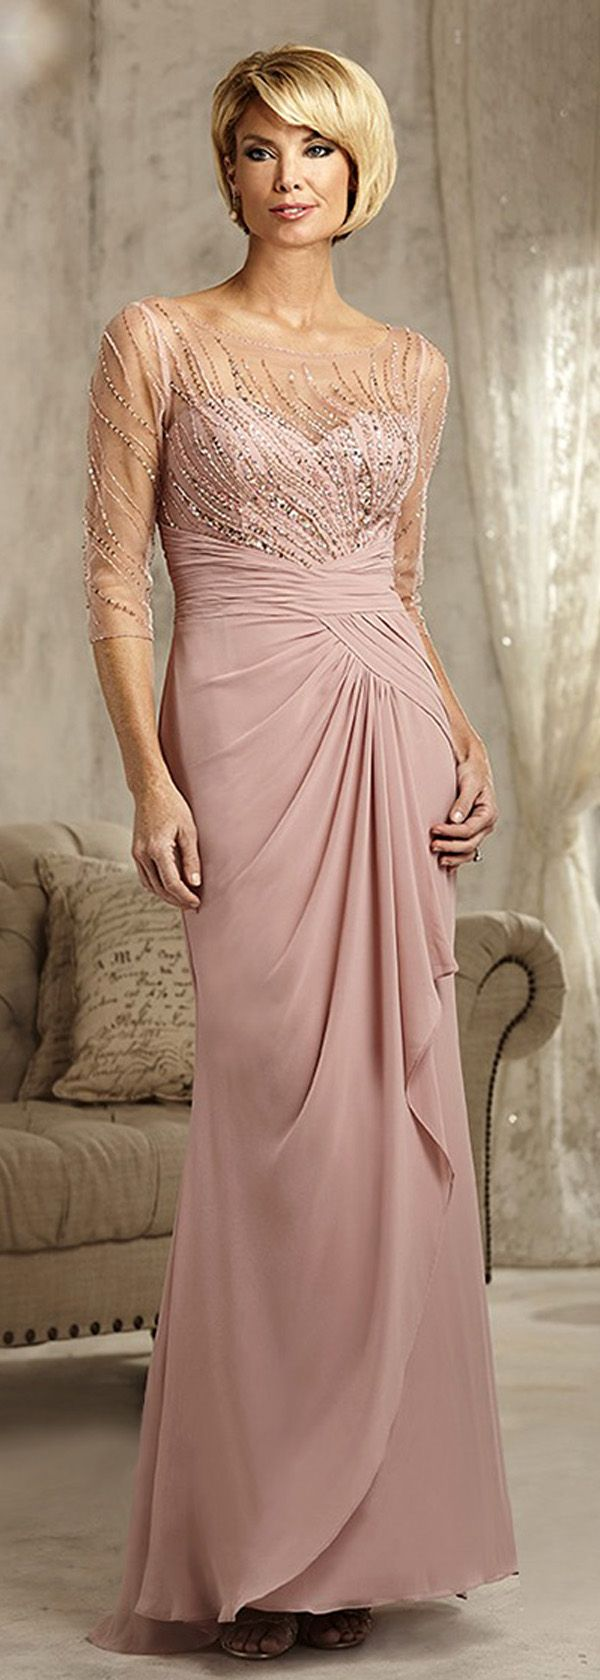 Exquisite Tulle & Chiffon Scoop Neckline Sheath Mother Of The Bride ...